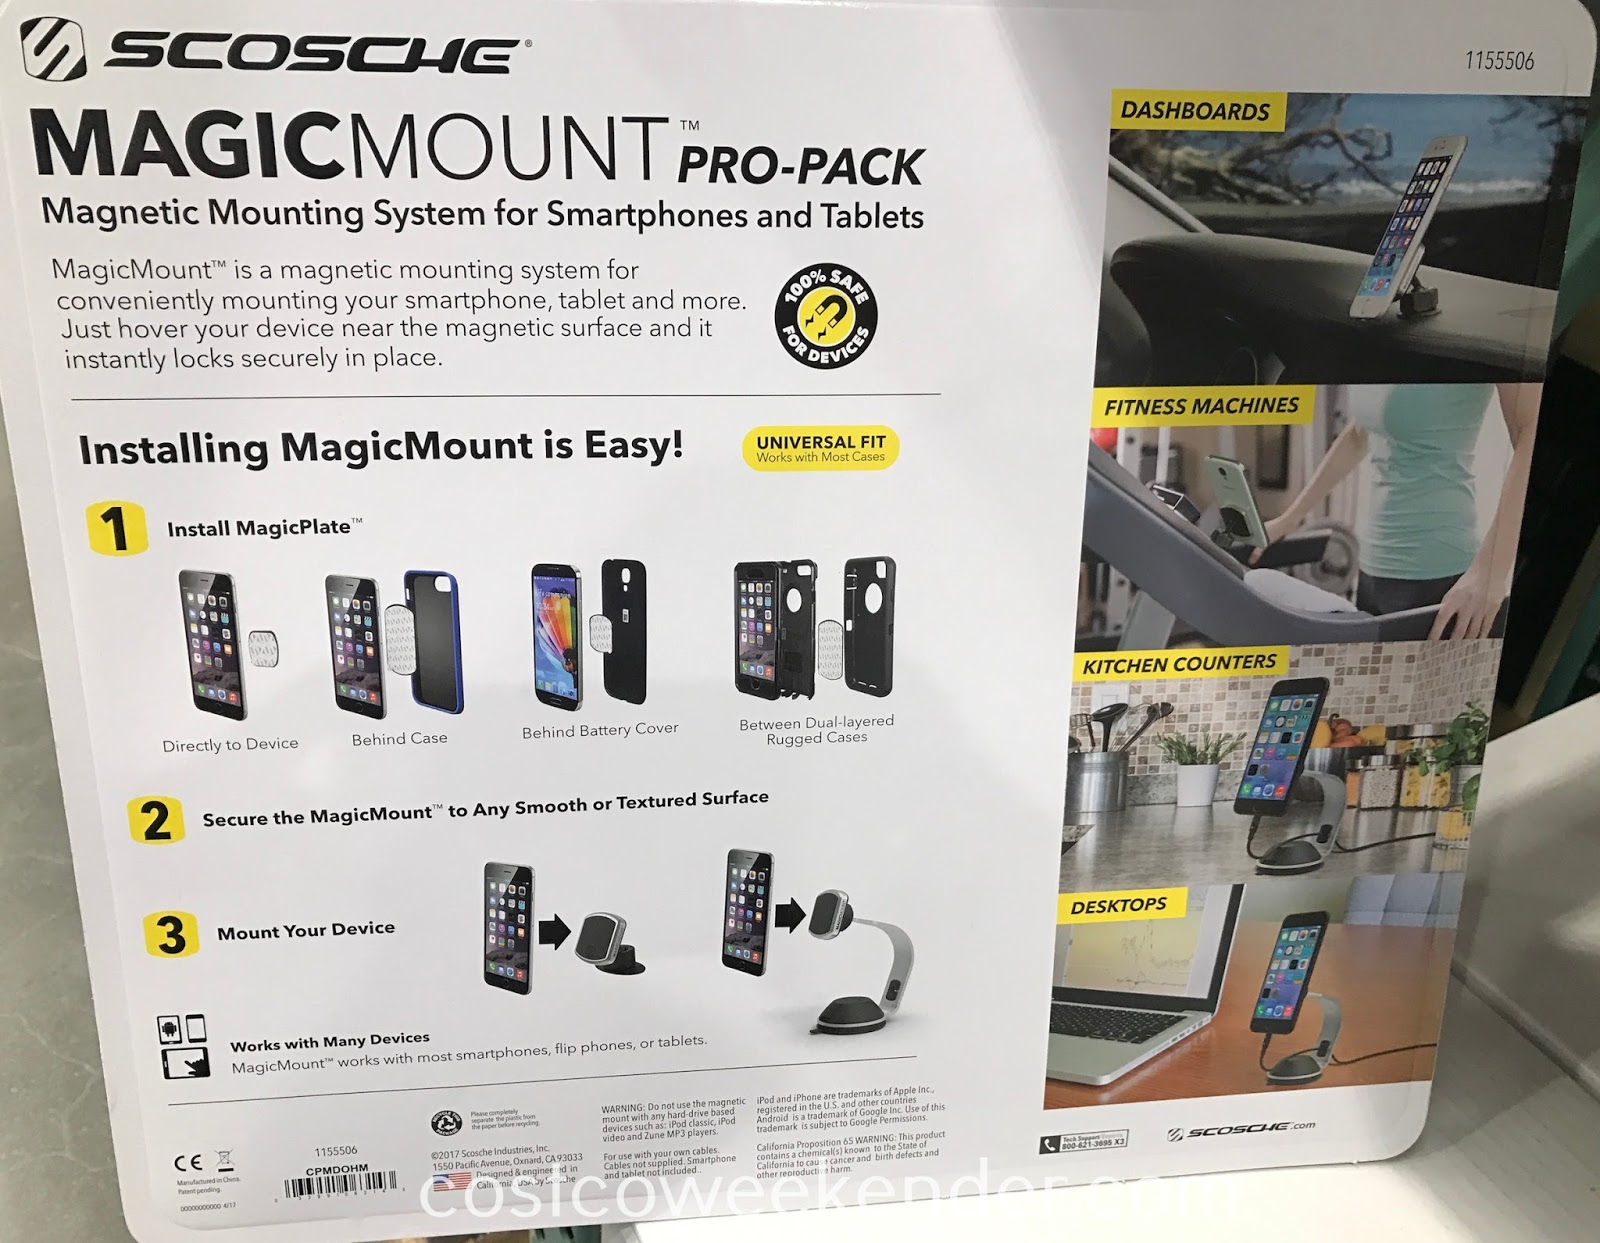 Costco 1155506 - Keep your device within reach with the Scosche Magic Mount Pro-Pack Magnetic Mounting System